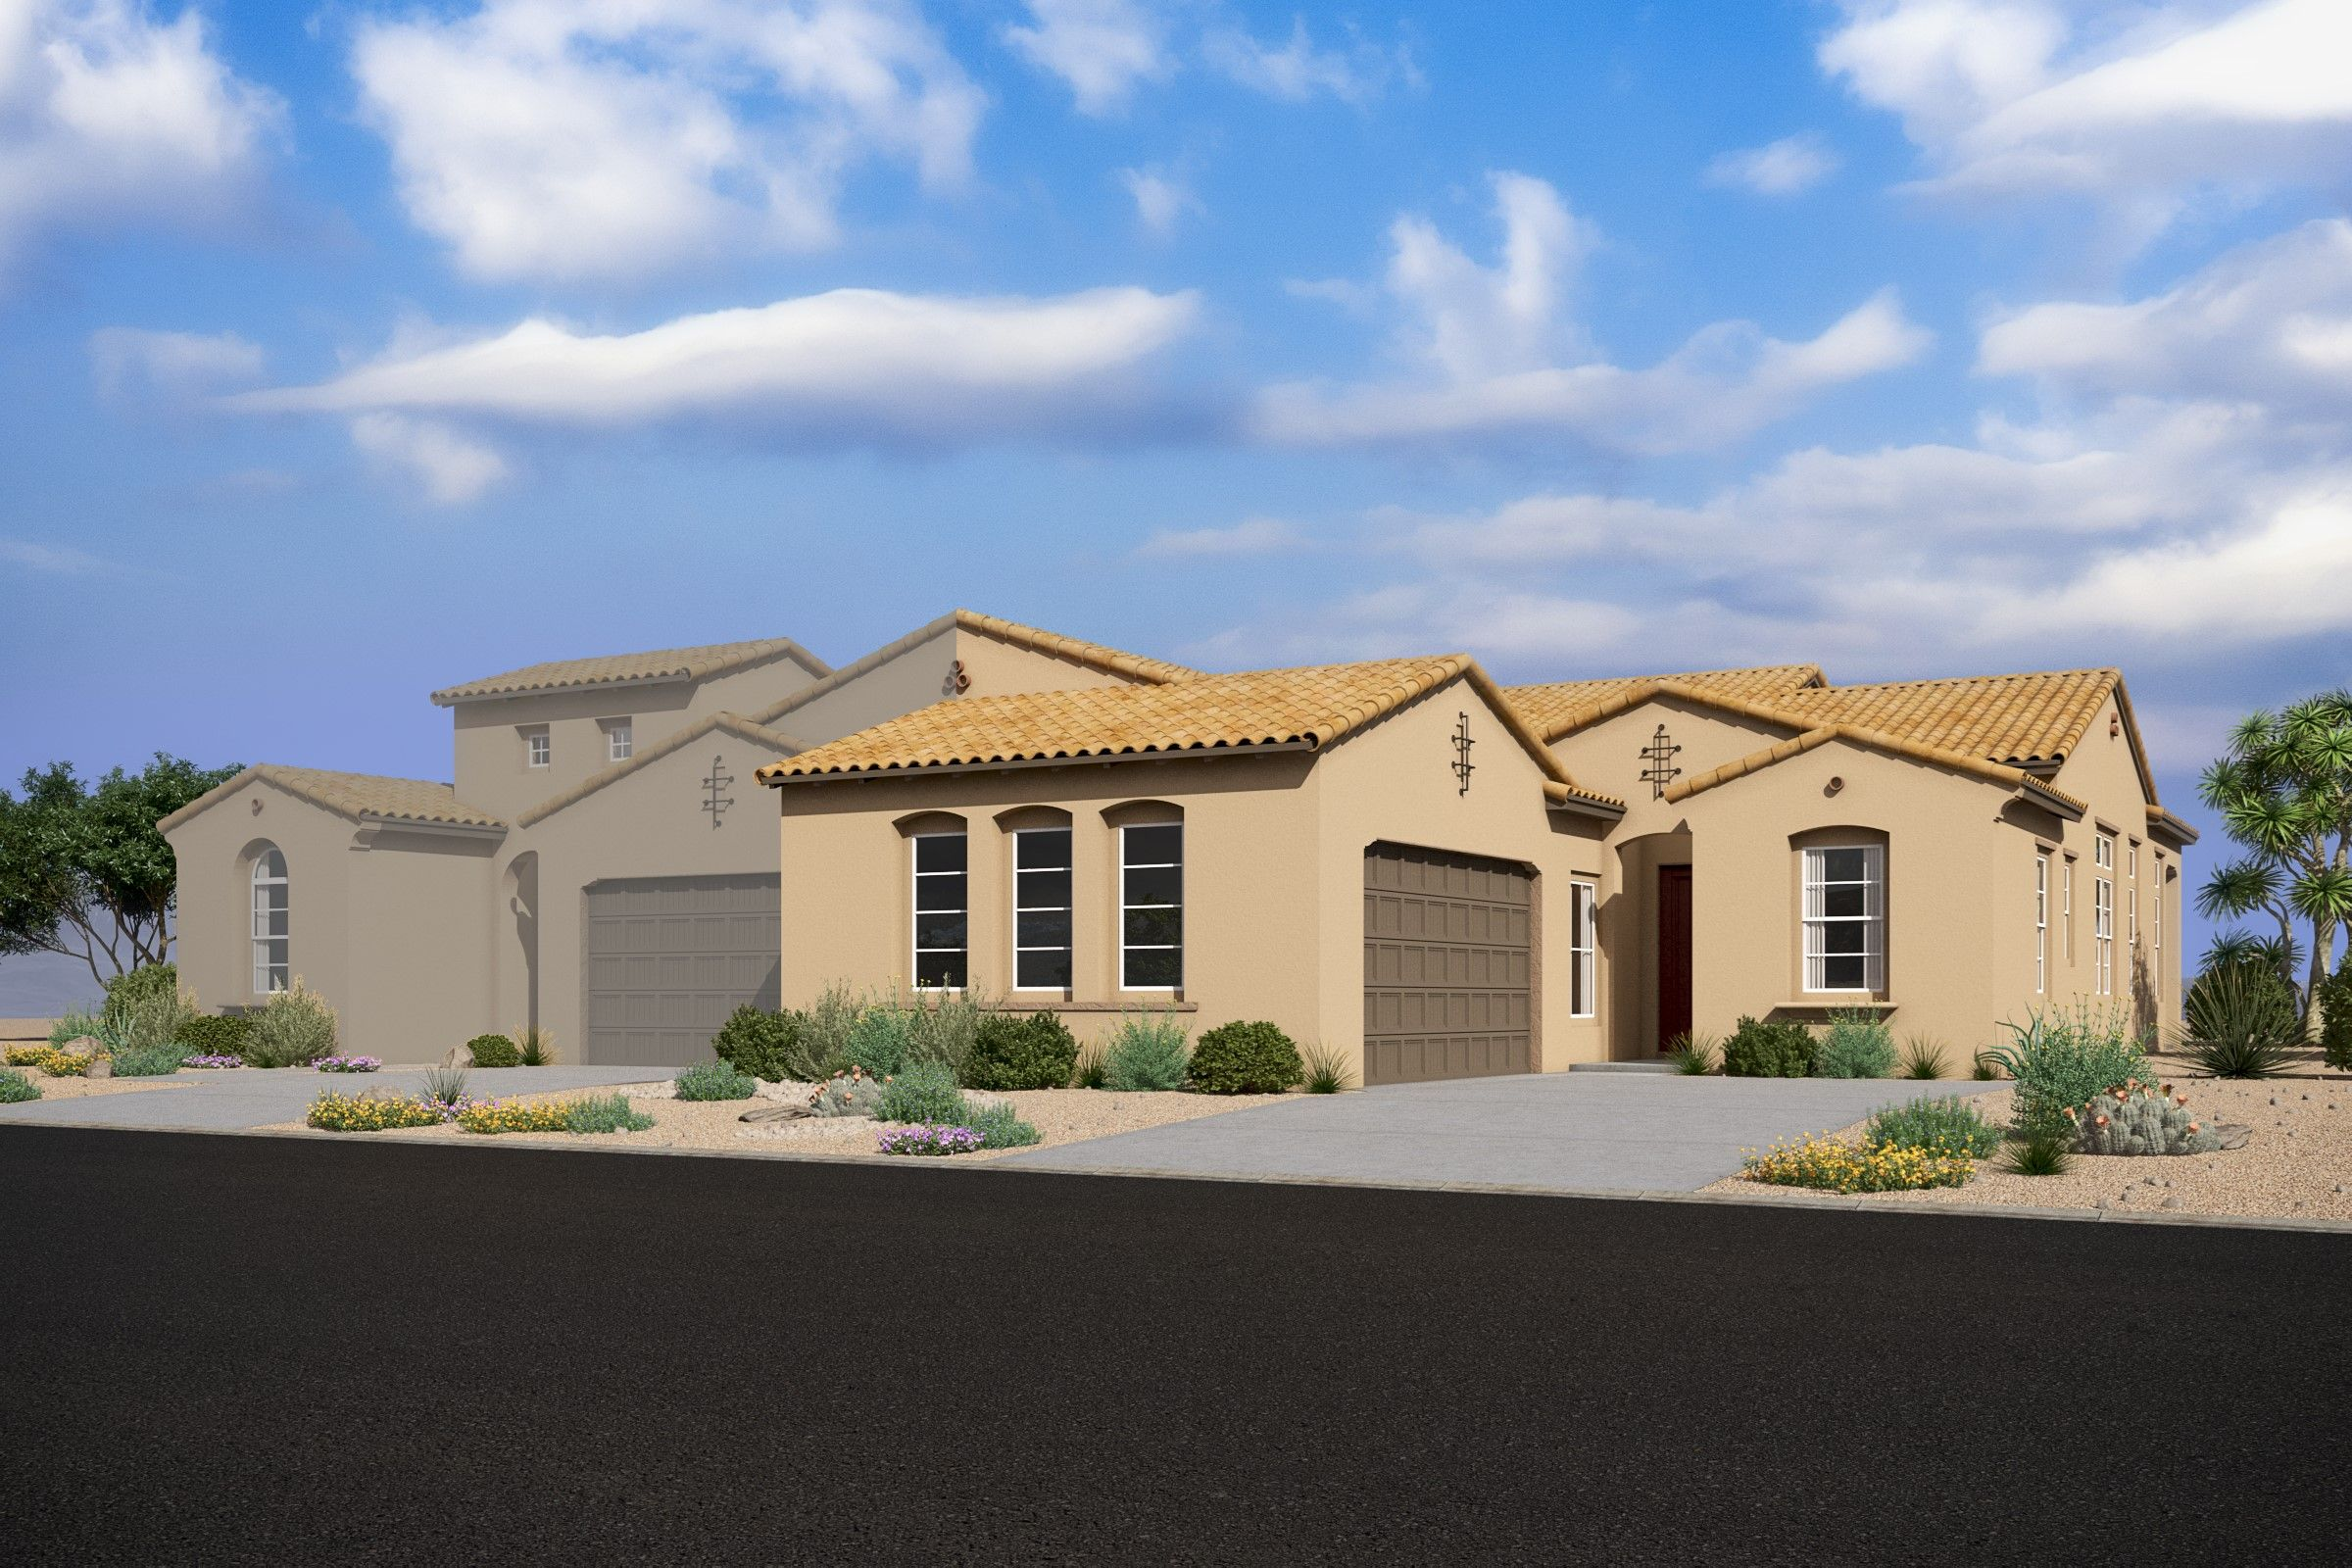 Multi Family for Sale at Summit At Silverstone - Ascent 74th St And Pinnacle Peak Rd Scottsdale, Arizona 85255 United States